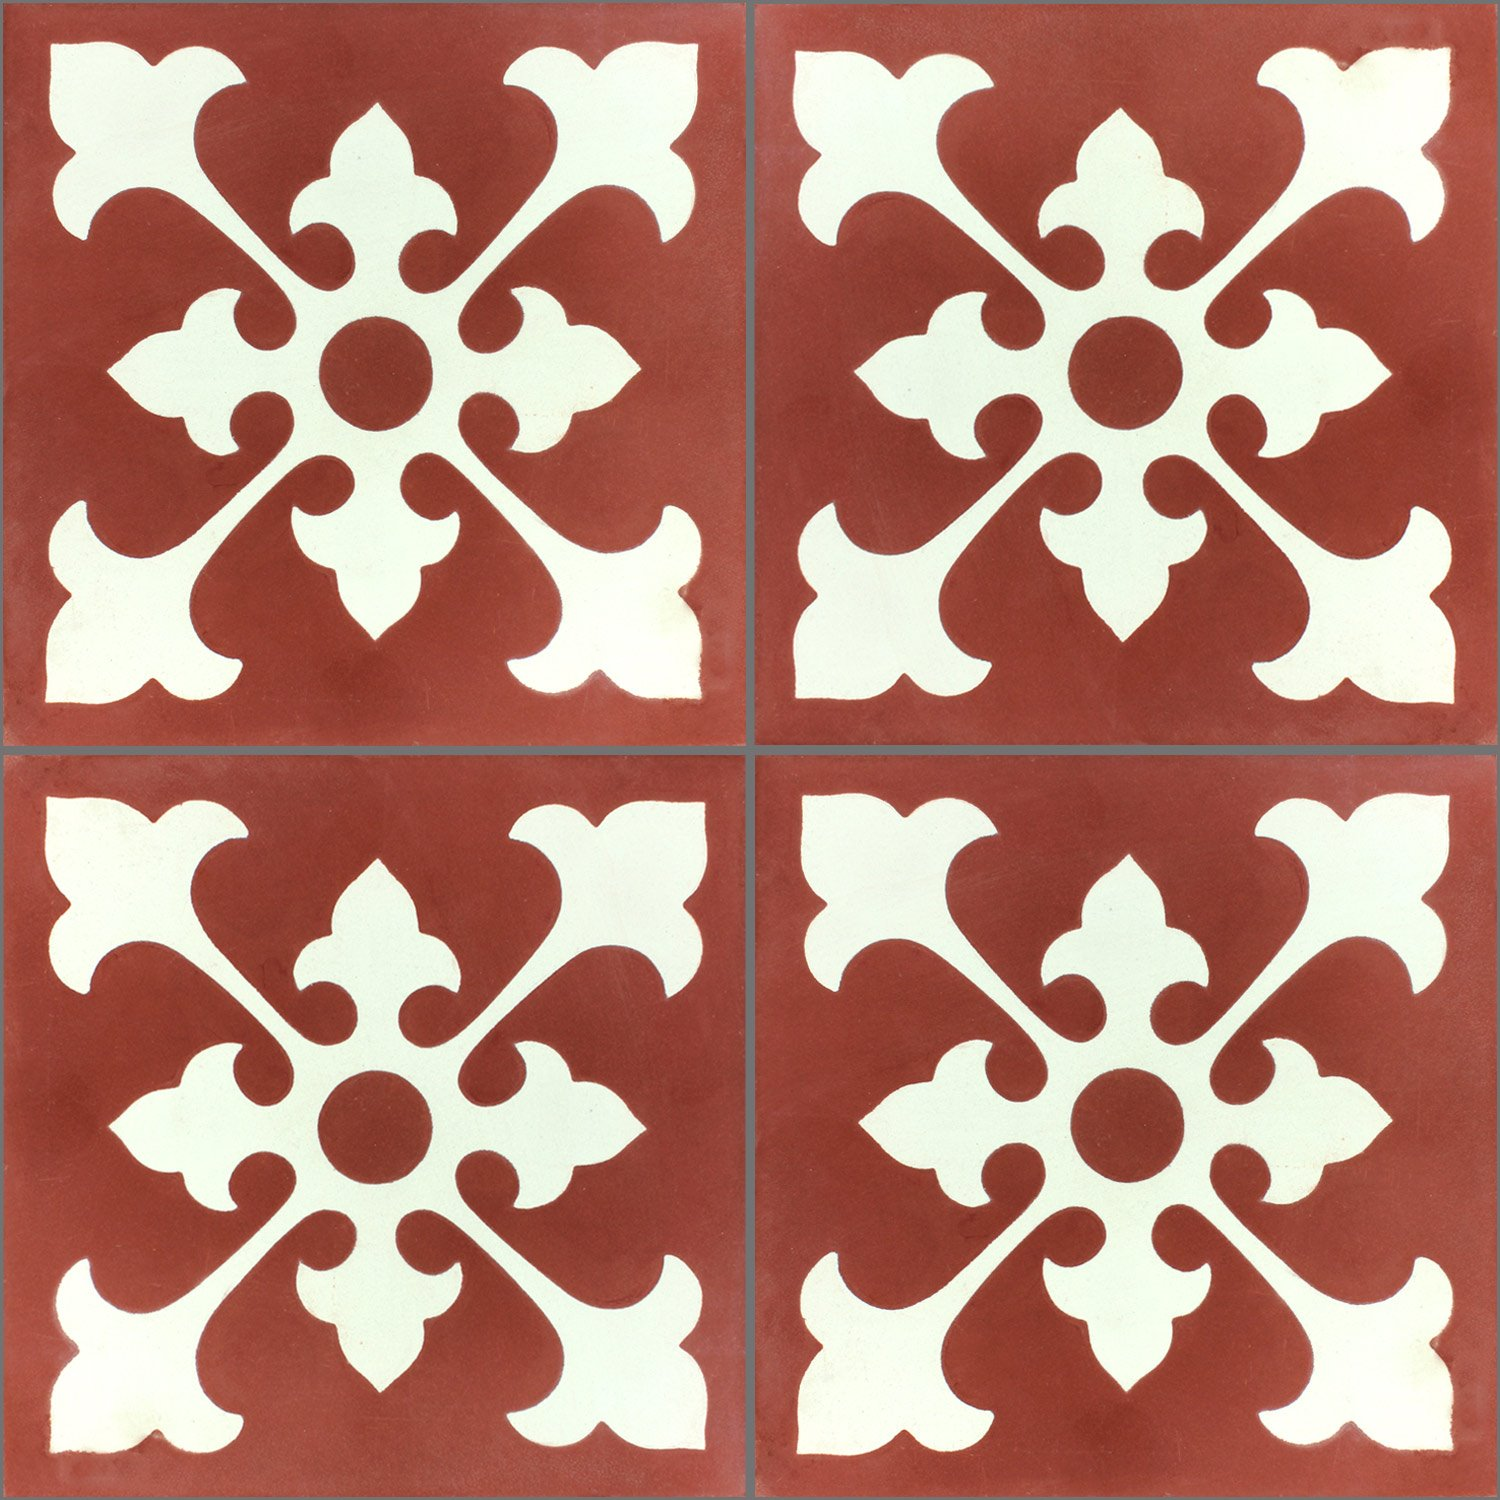 cement antique tiles 20x20cm ornament red white pl78195. Black Bedroom Furniture Sets. Home Design Ideas